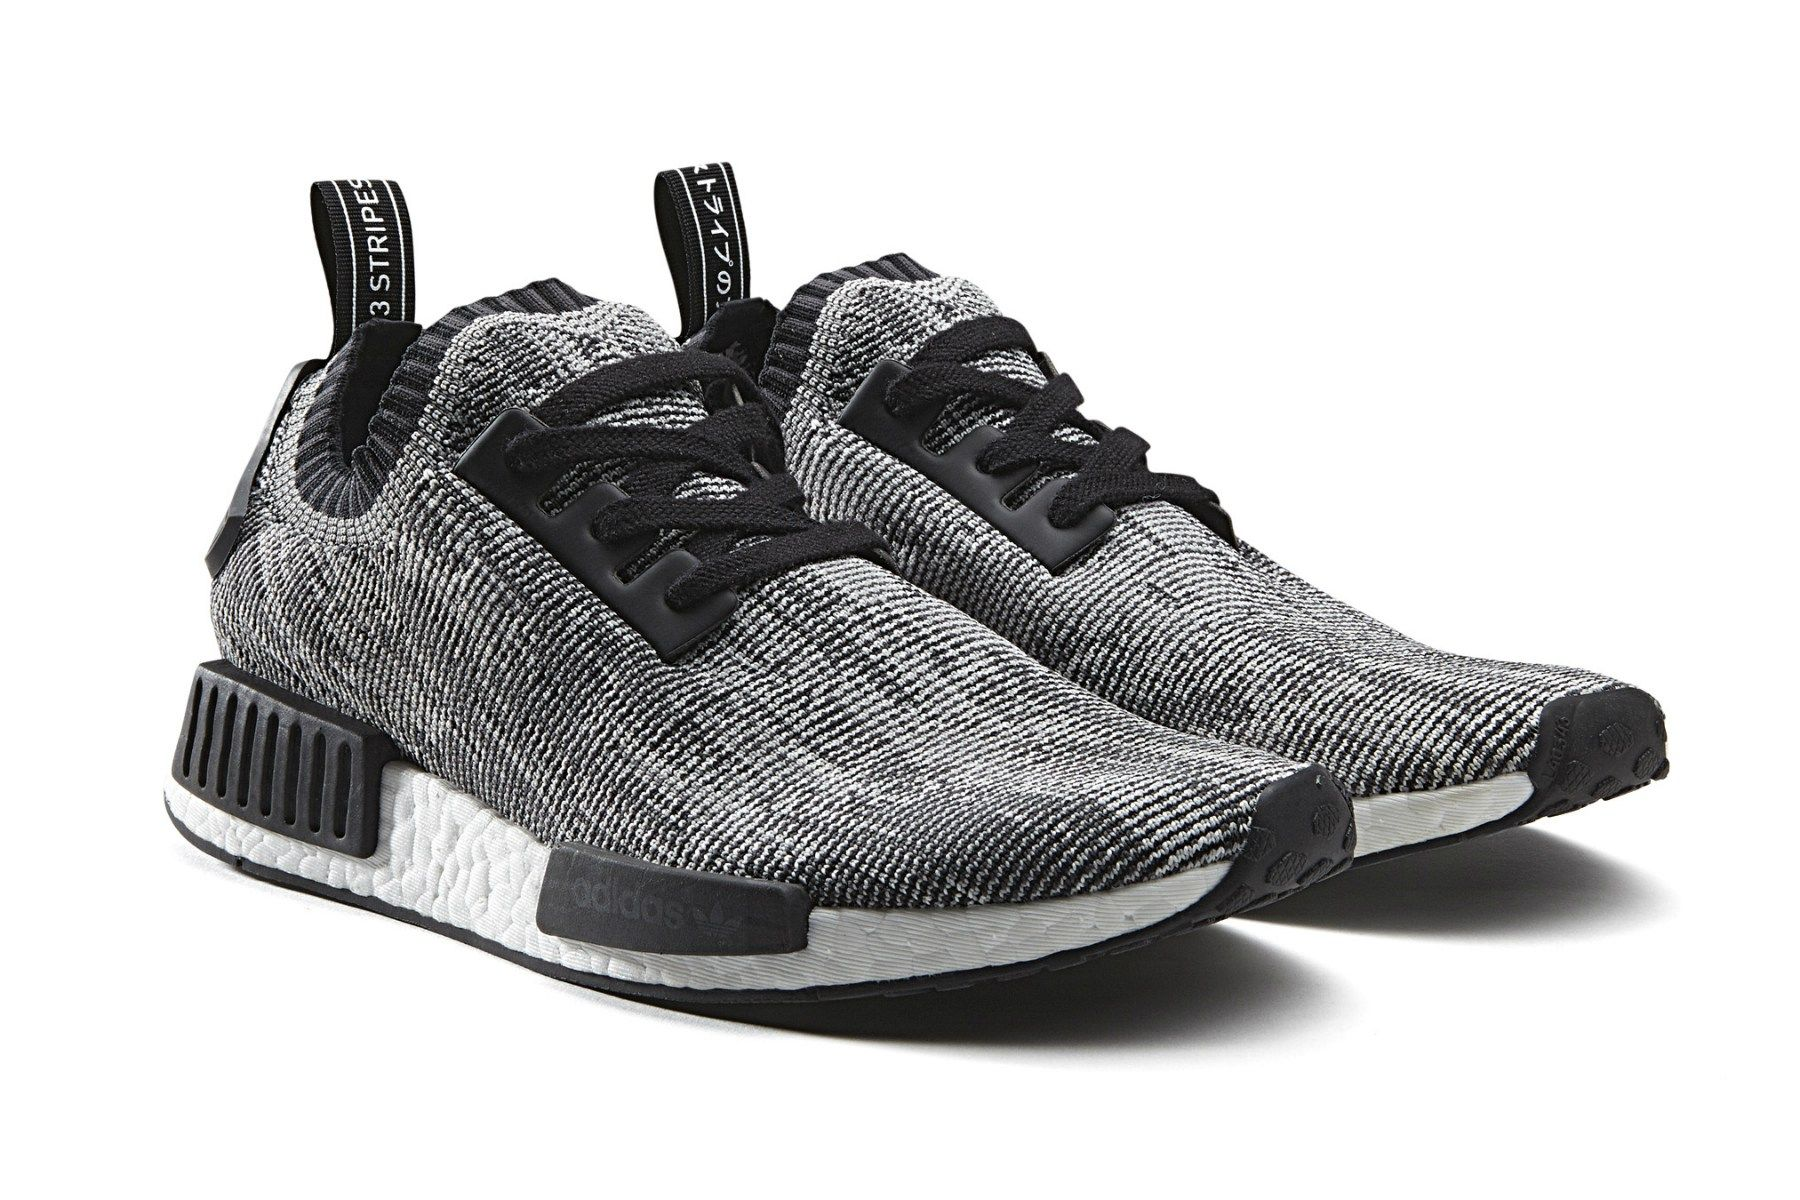 Adidas Adidas Boost Adidas Originals Adidas Nmd R1 Adidas Nmd W - Introducing the adidas originals nmd primeknit